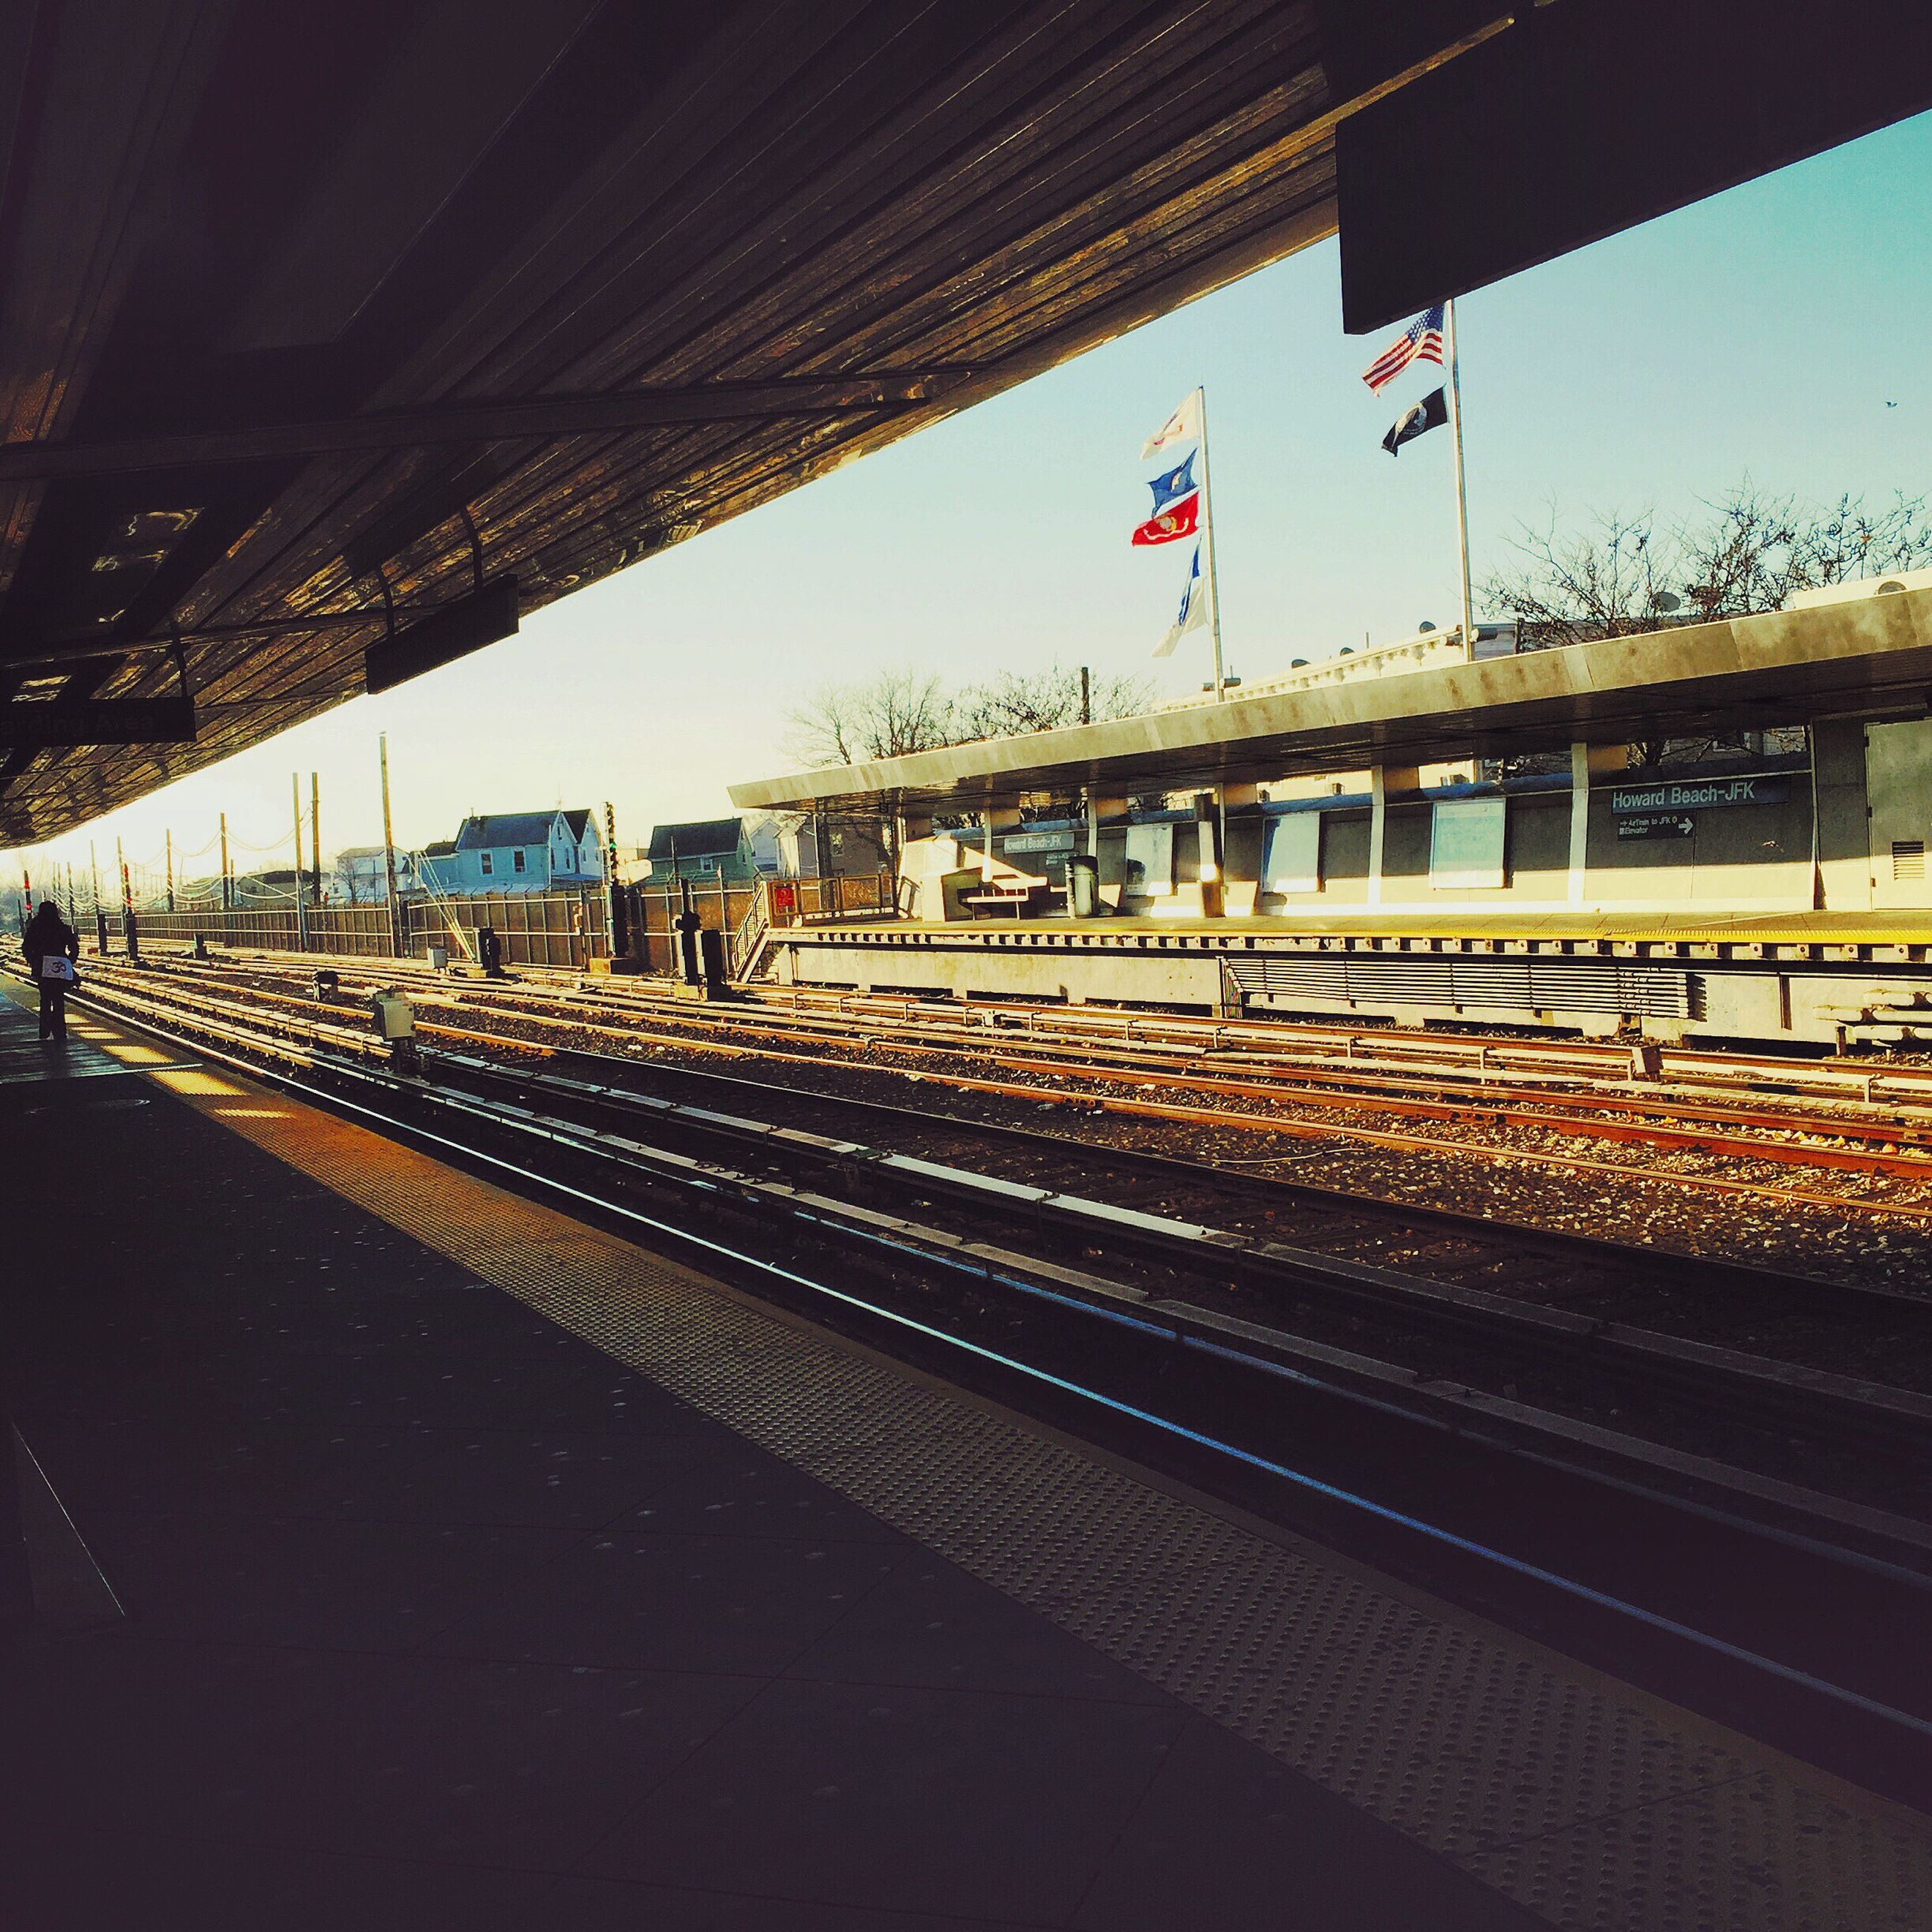 railroad track, transportation, rail transportation, railroad station platform, railroad station, public transportation, architecture, built structure, sky, train - vehicle, travel, railway track, building exterior, the way forward, mode of transport, city, station, passenger train, diminishing perspective, road